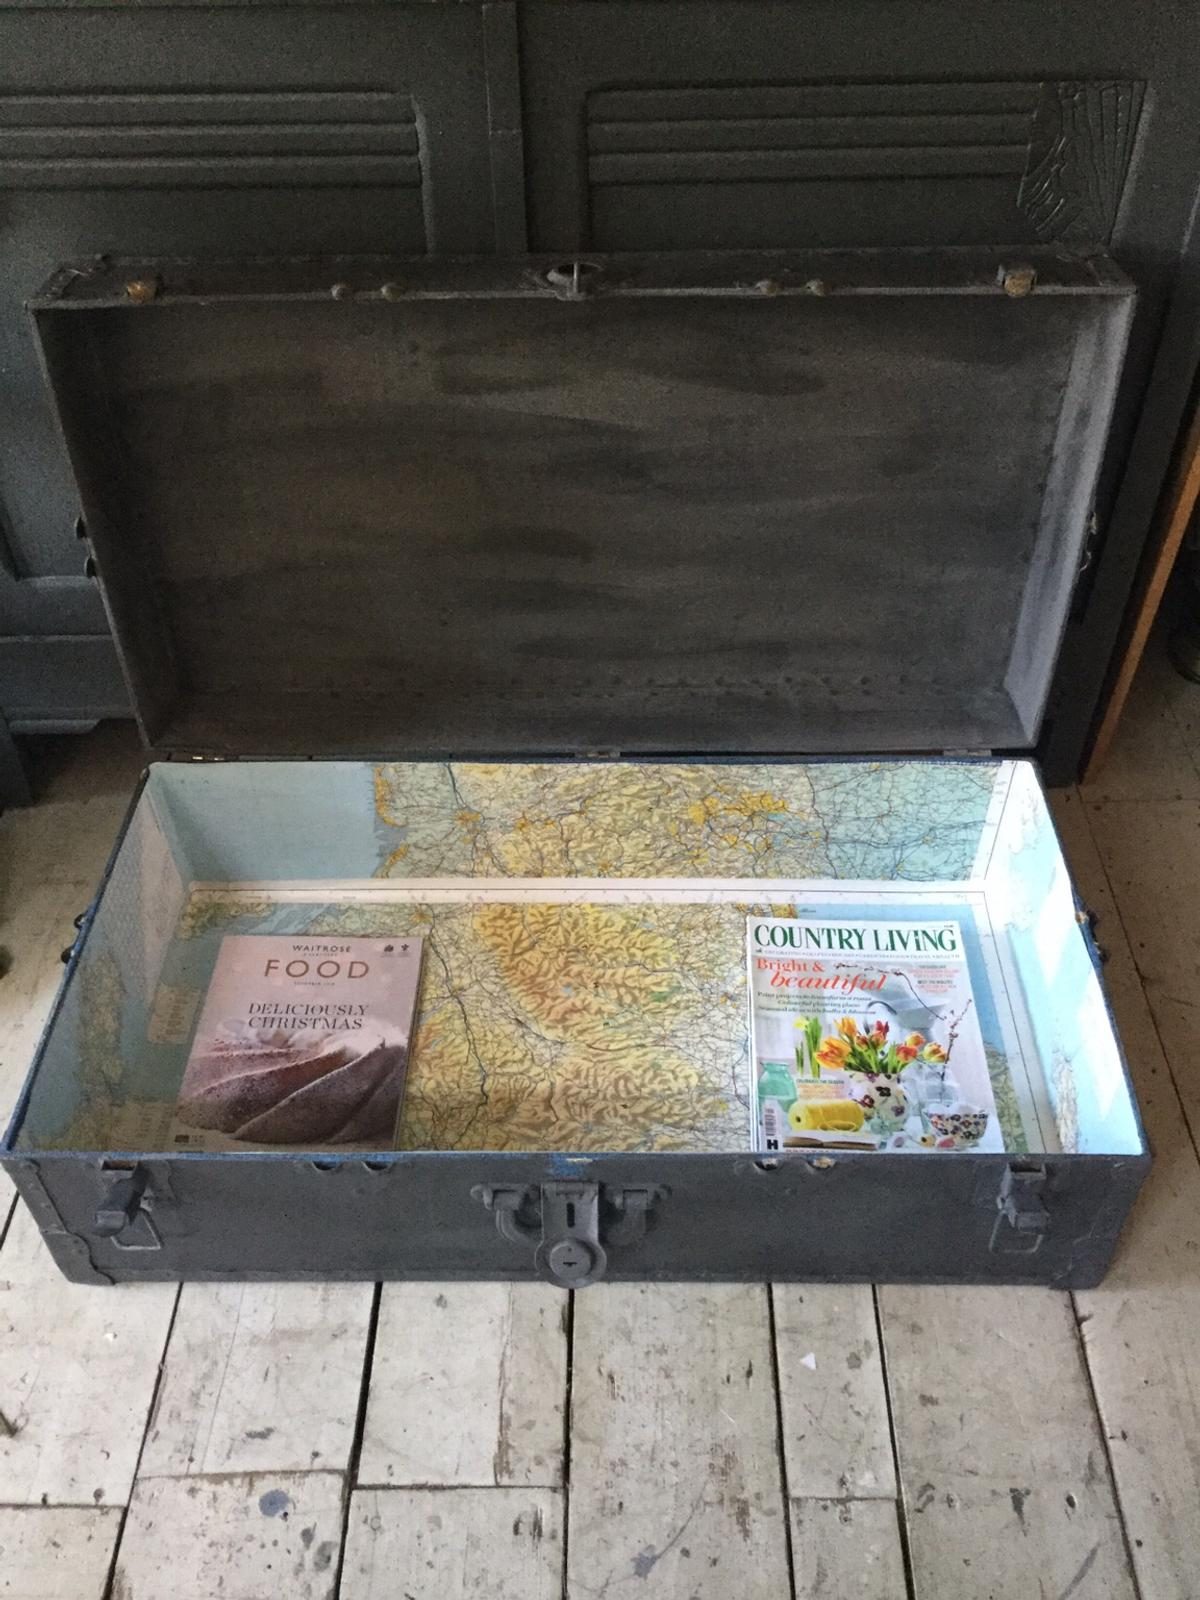 Coffee Table Toy Chest.Vintage Steamer Trunk Coffee Table Toy Box In Wd18 Watford Fur